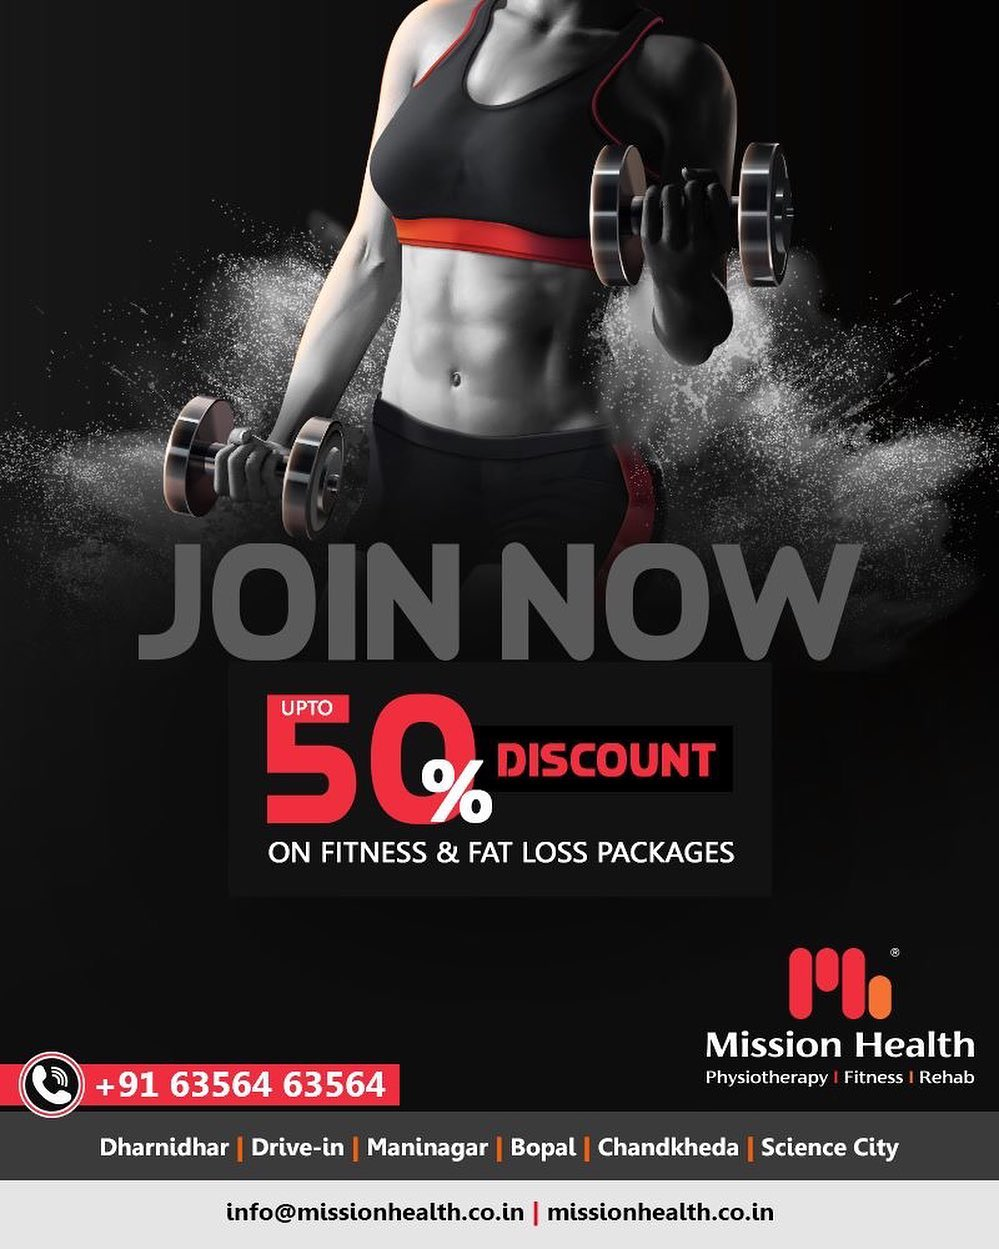 Have You Registered? Mission Health Fitness Boutique is offering up to 50% Discounts on various Fitness & Fat Loss Packages.  Hurry Up! It's a Limited Period Offer  Call: +916356463564 Visit: www.missionhealth.co.in  #fitnessworkout #fitness #fitnessmotivation #workout #fitnesslife #gym #workoutmotivation #fitnessaddict #fitnesscoaching #healthchallenge #MissionHealth #MissionHealthIndia #MovementIsLife